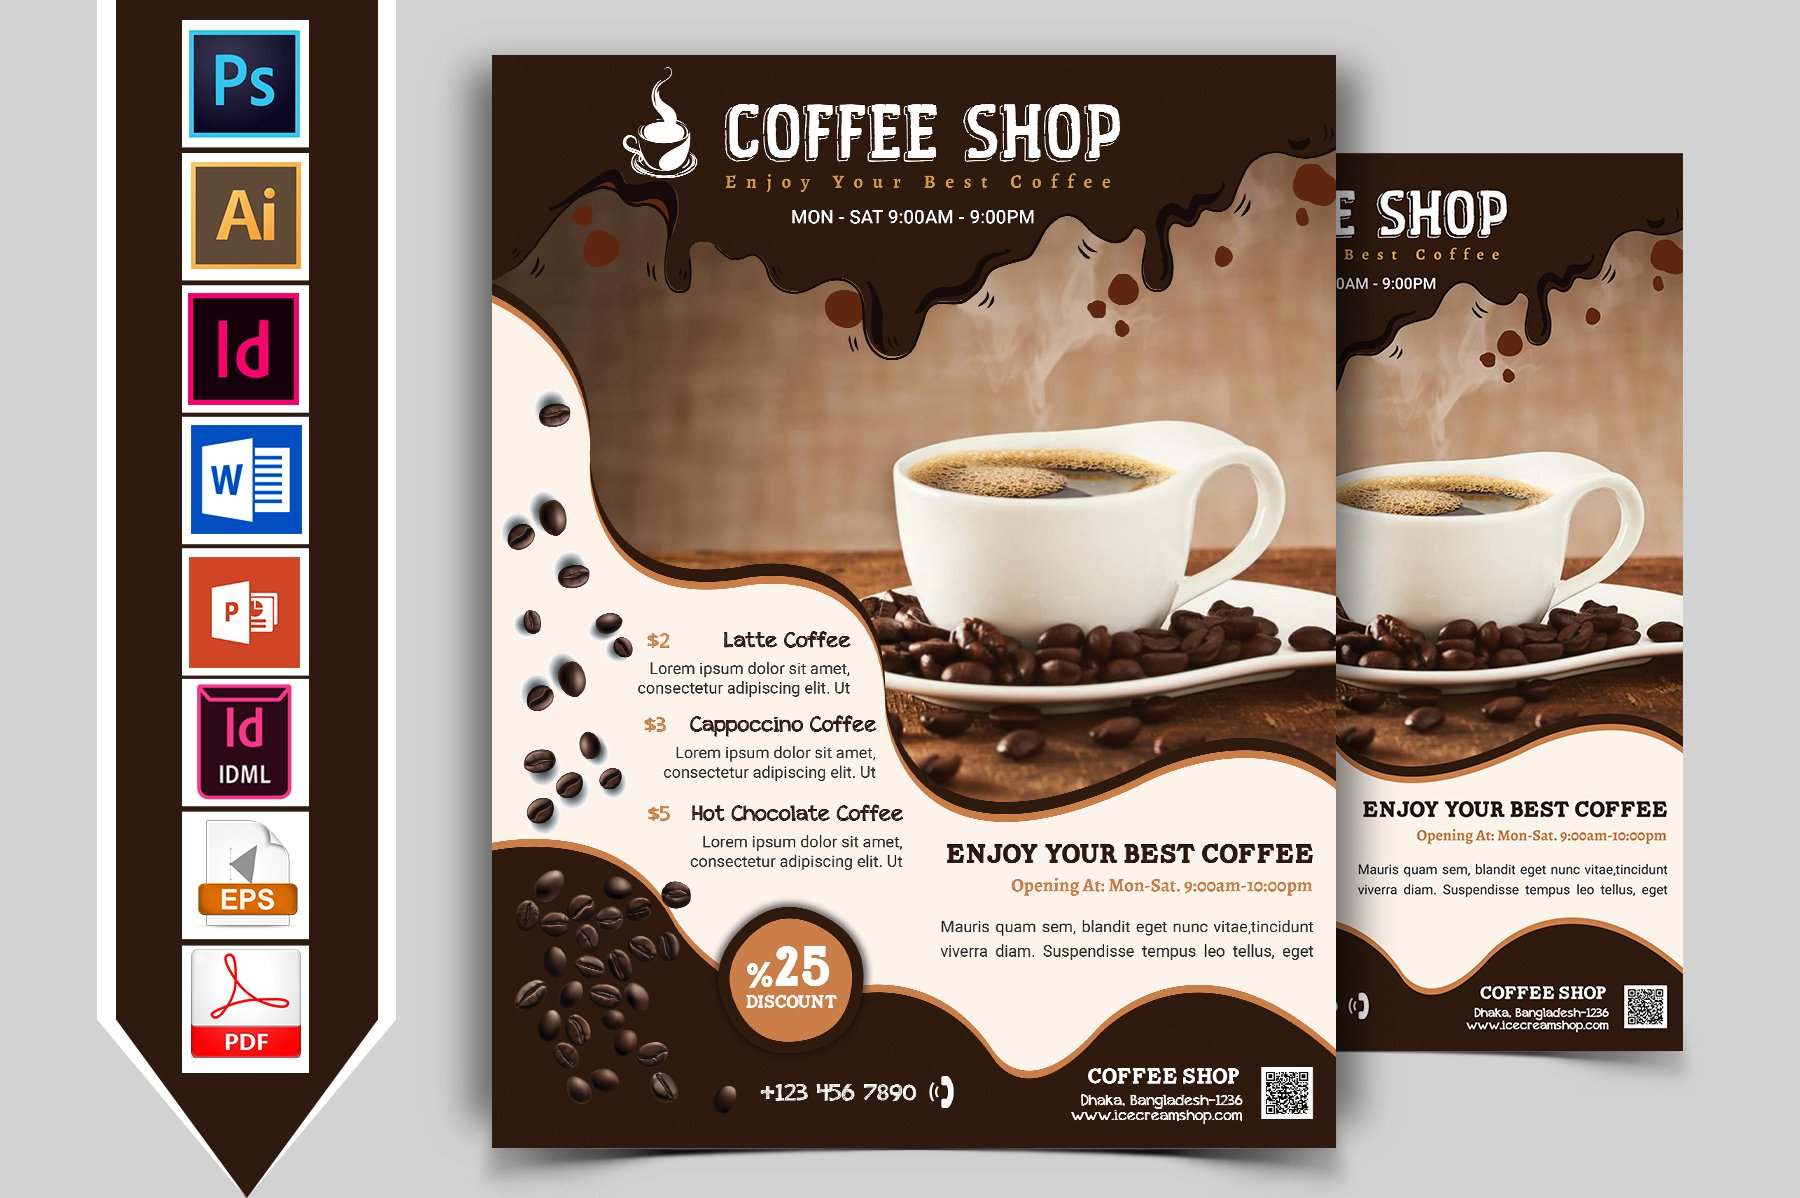 Coffee Shop Promotion Flyer Template ~ Flyer Templates on ... |New Coffee Shop Flyer